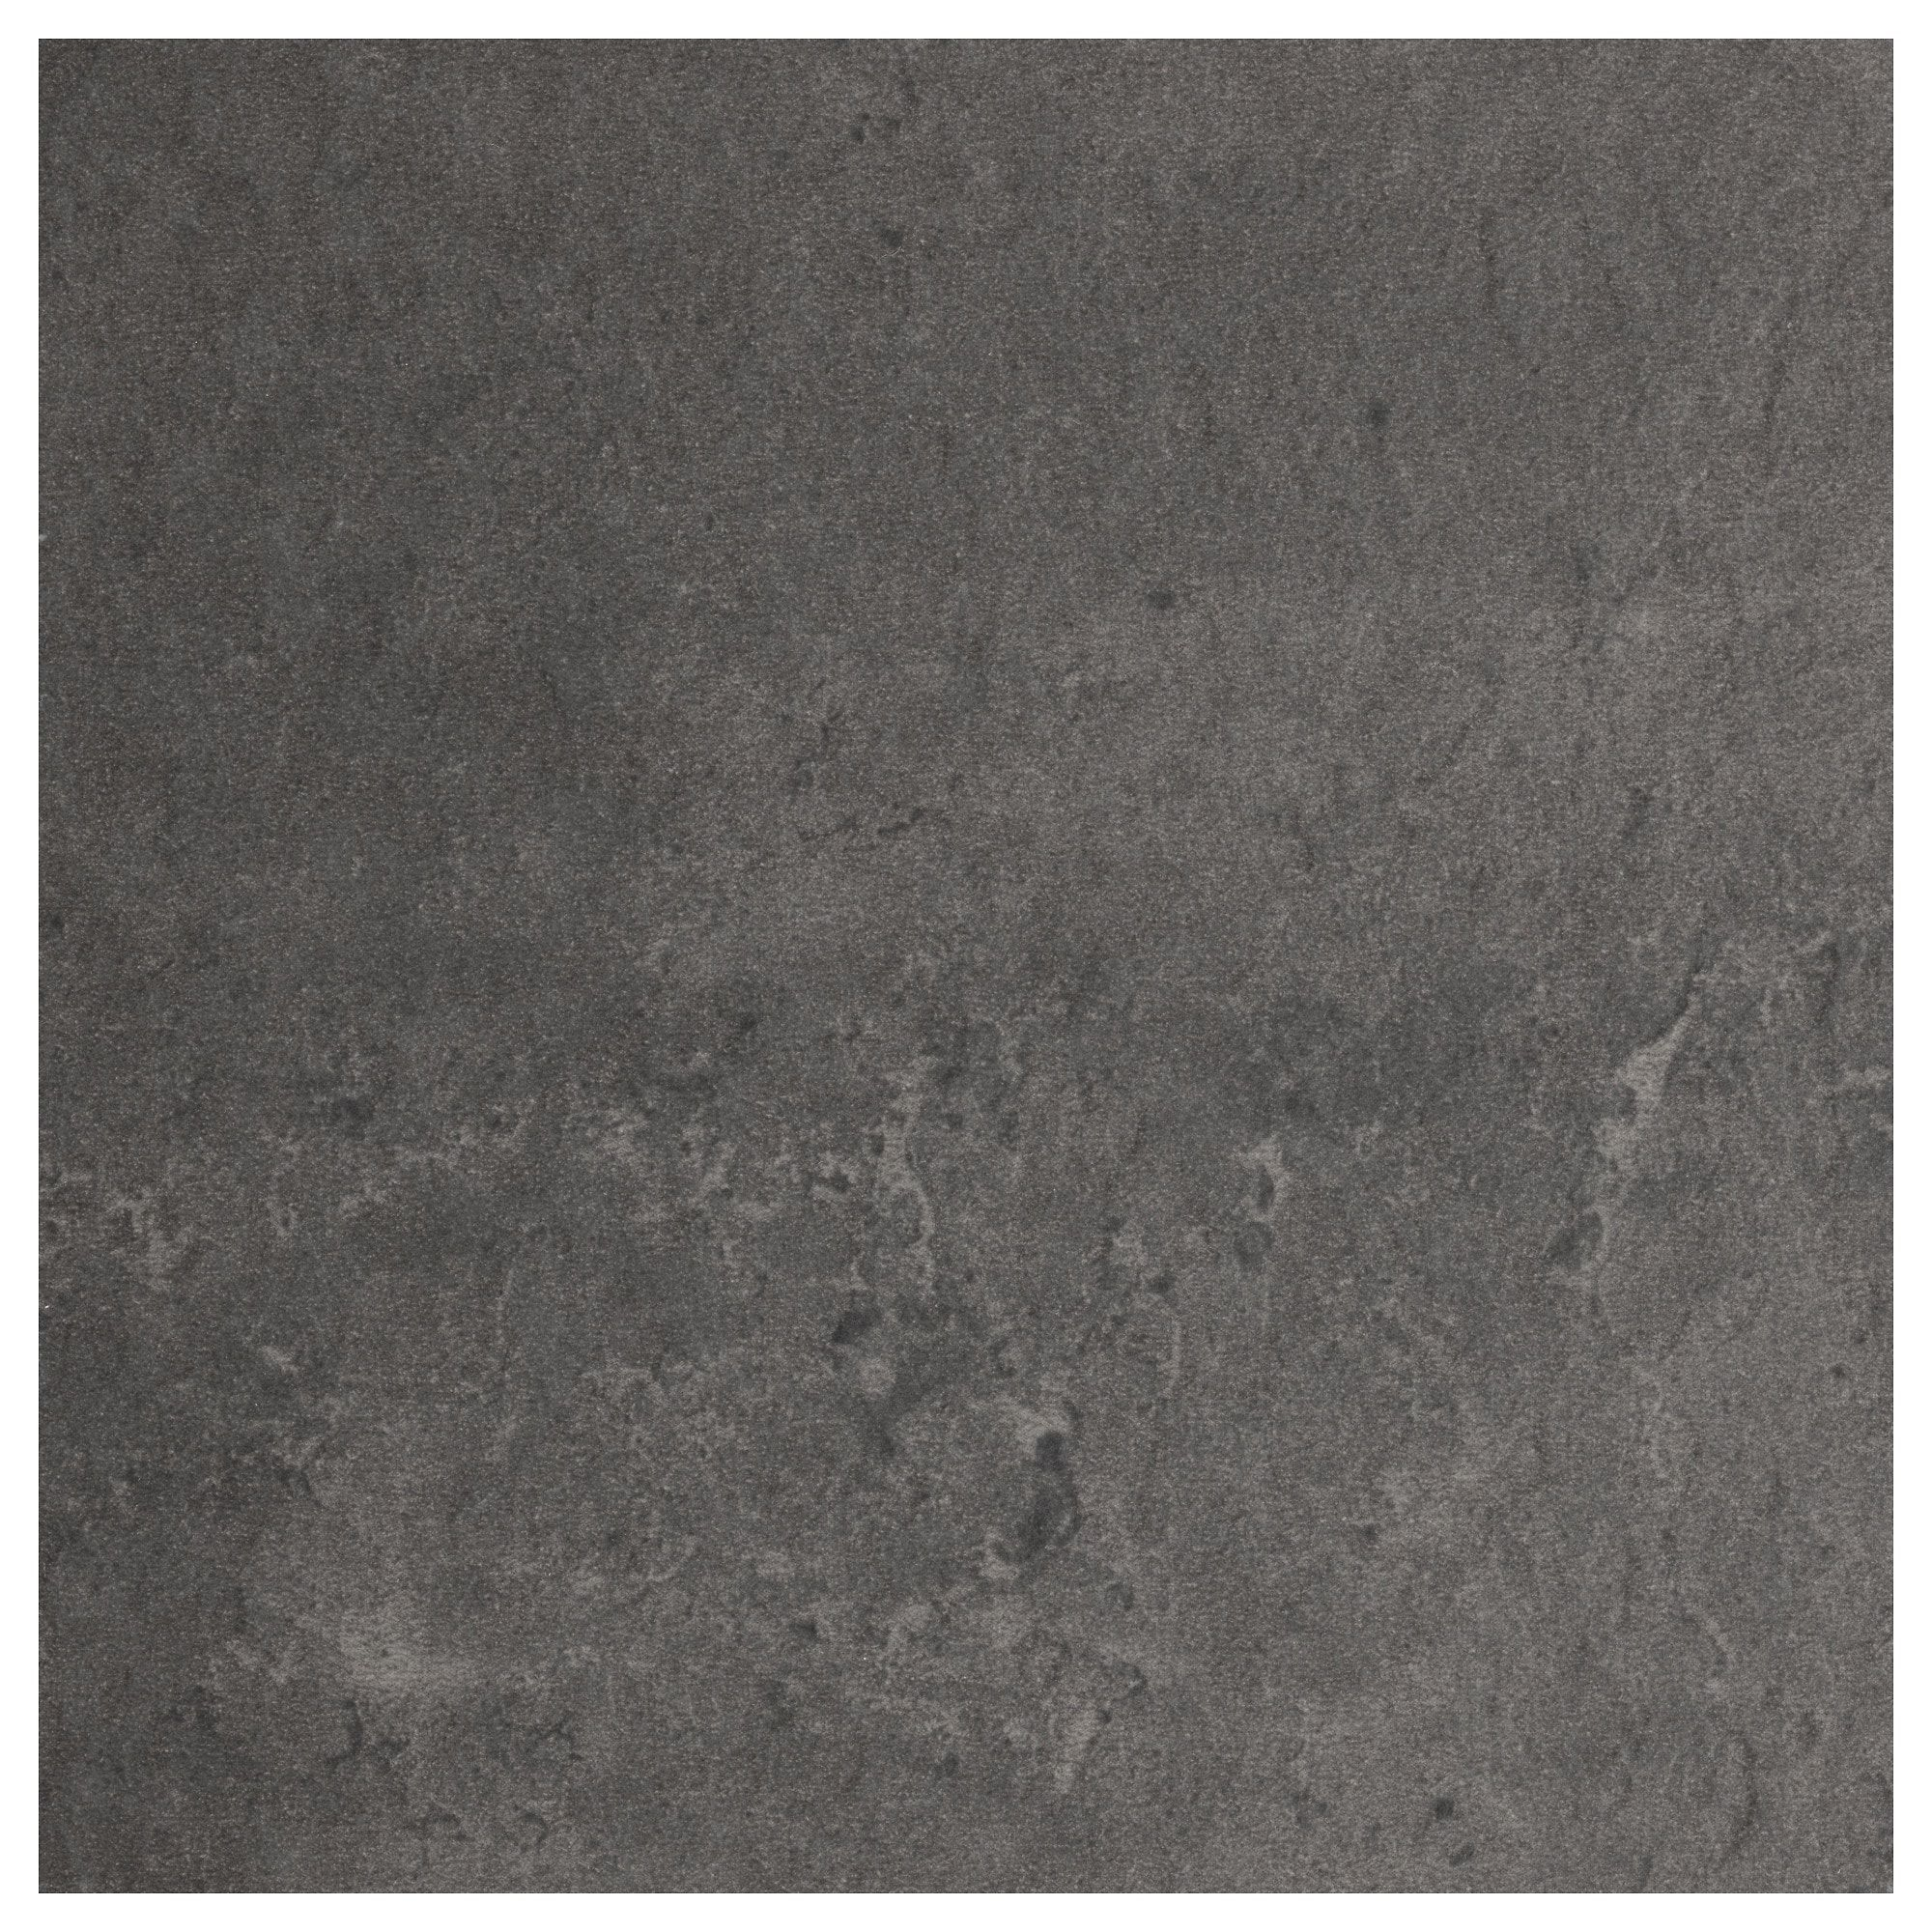 Furniture Home Furnishings Find Your Inspiration Laminate Countertops Countertops Kitchen Countertops